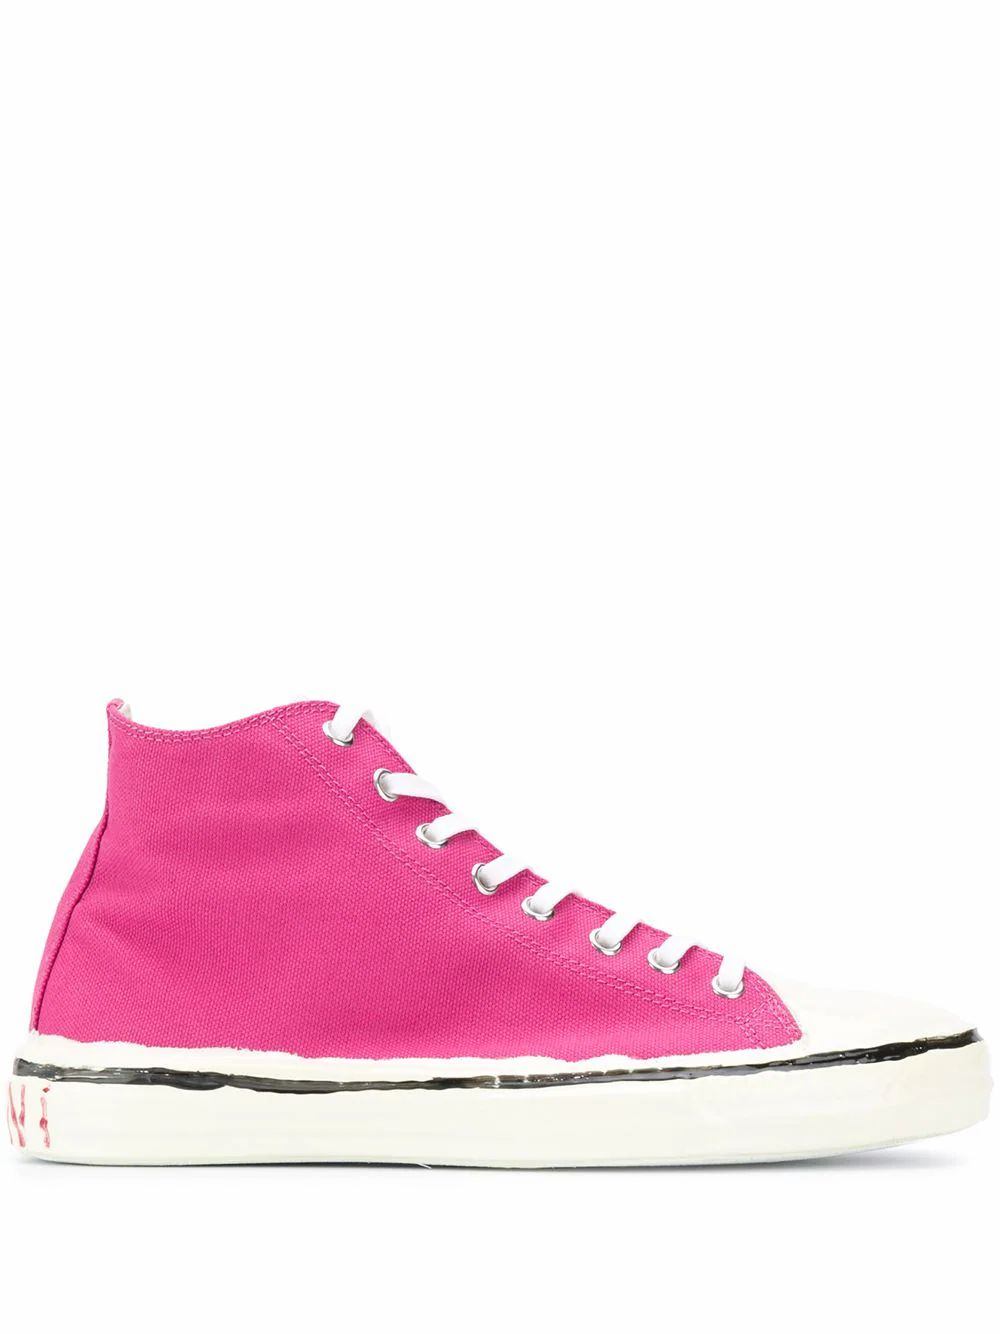 Marni MARNI WOMEN'S SNZW006602P3571ZN069 PINK COTTON HI TOP SNEAKERS